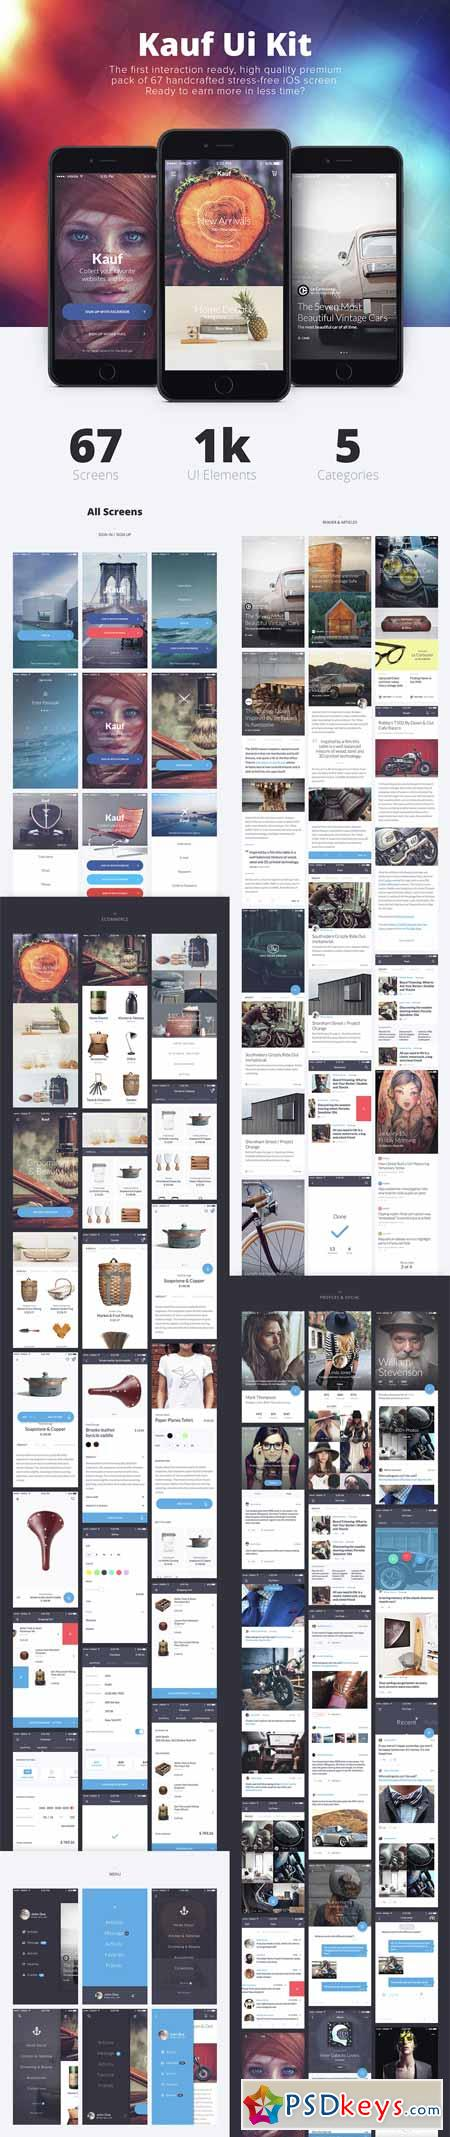 Kauf iOS UI Kit - 67+ Template for Sketch » Free Download Photoshop